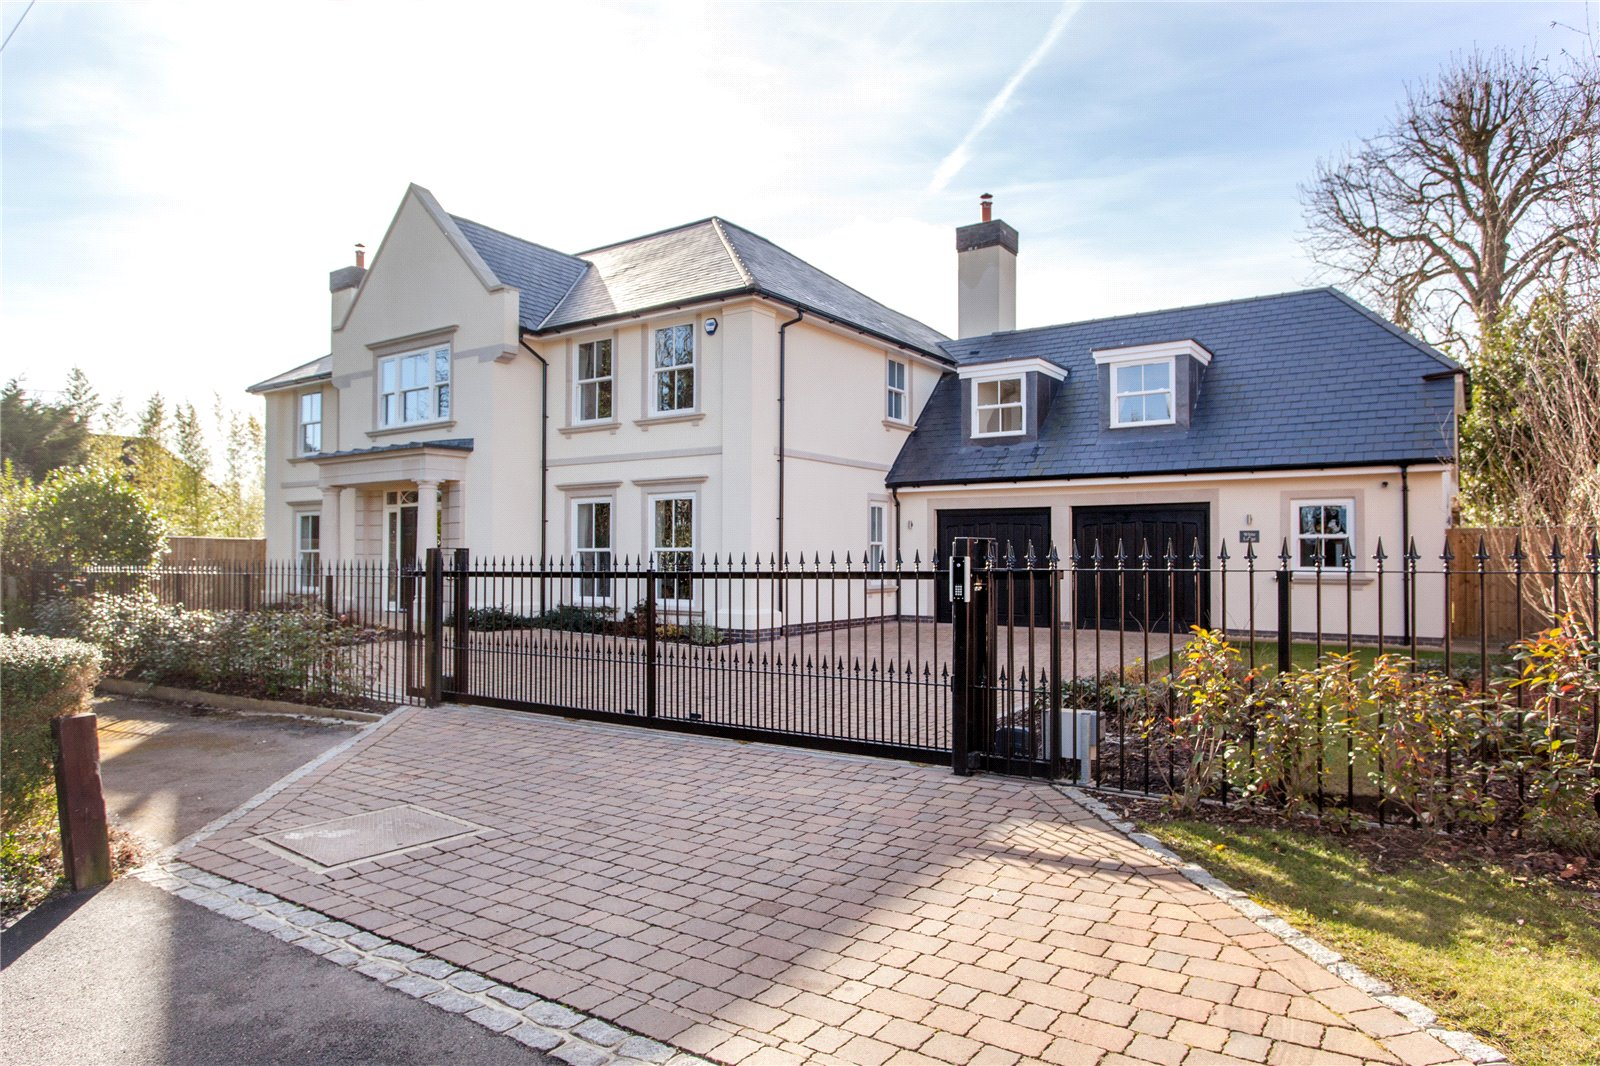 5 Bedrooms Detached House for sale in Normanstead, Henley-On-Thames, Oxfordshire, RG9